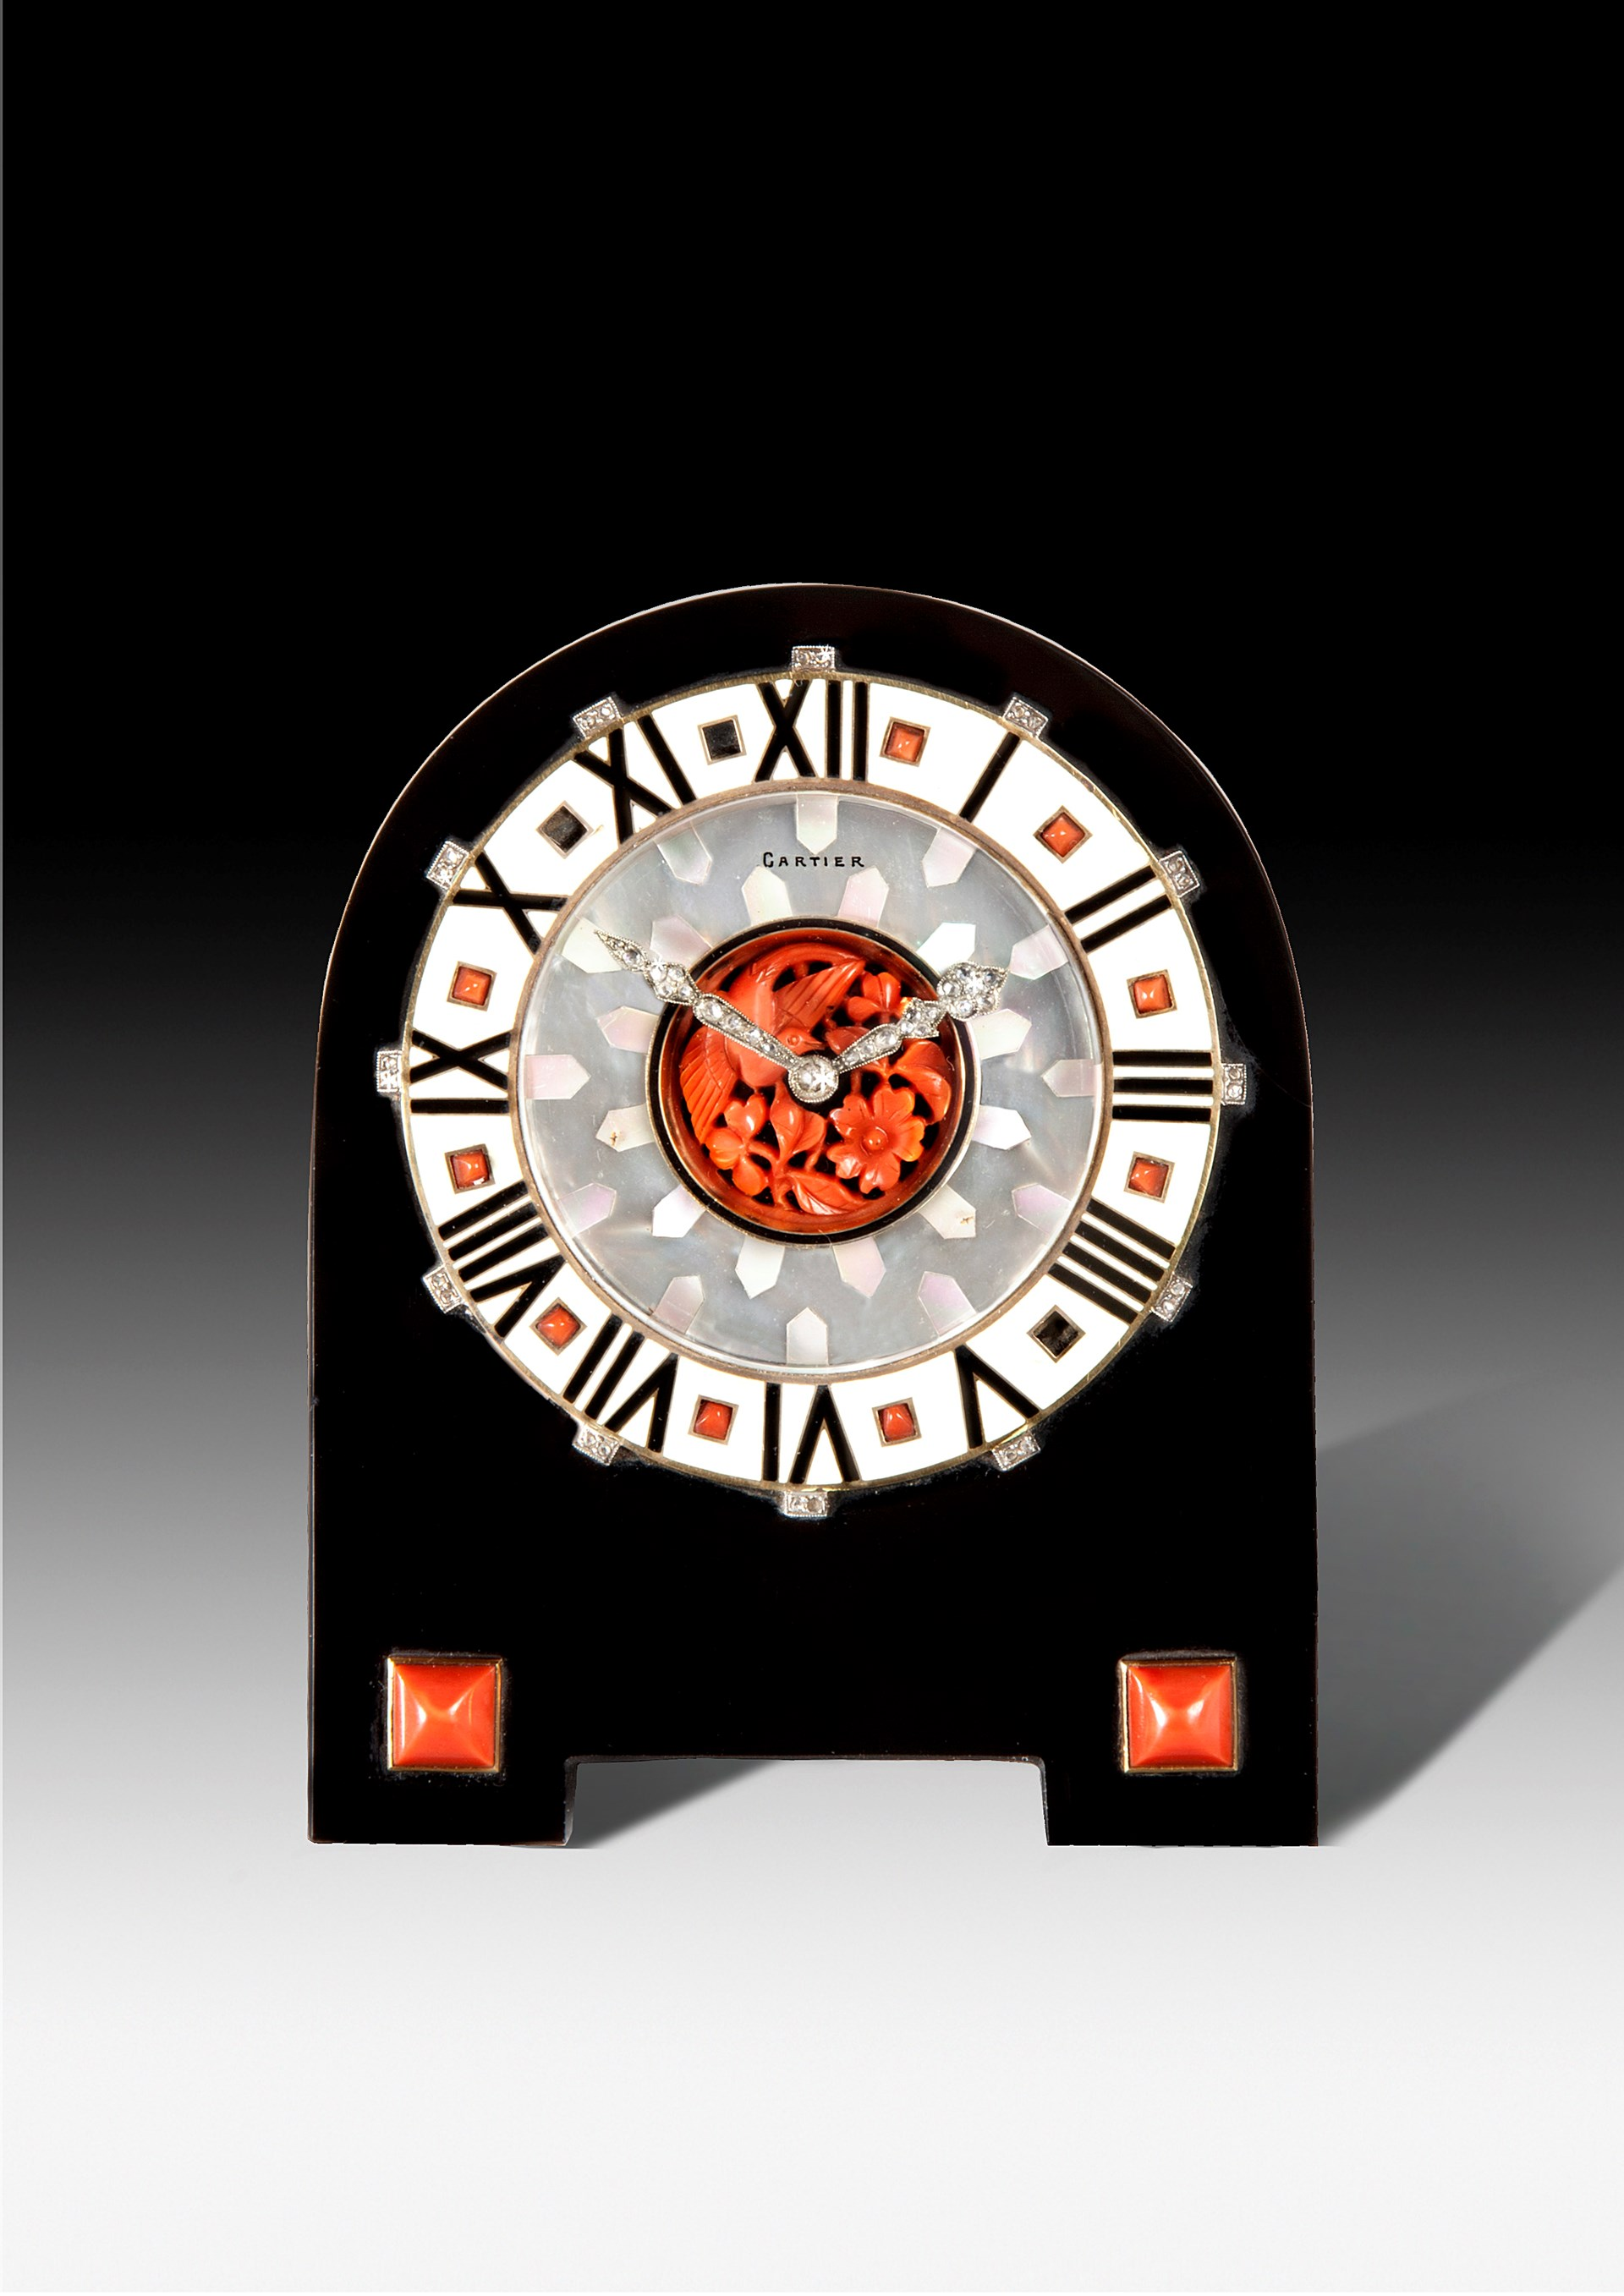 Cartier clock sells for £49,000 at The Canterbury Auction Galleries Banner Image